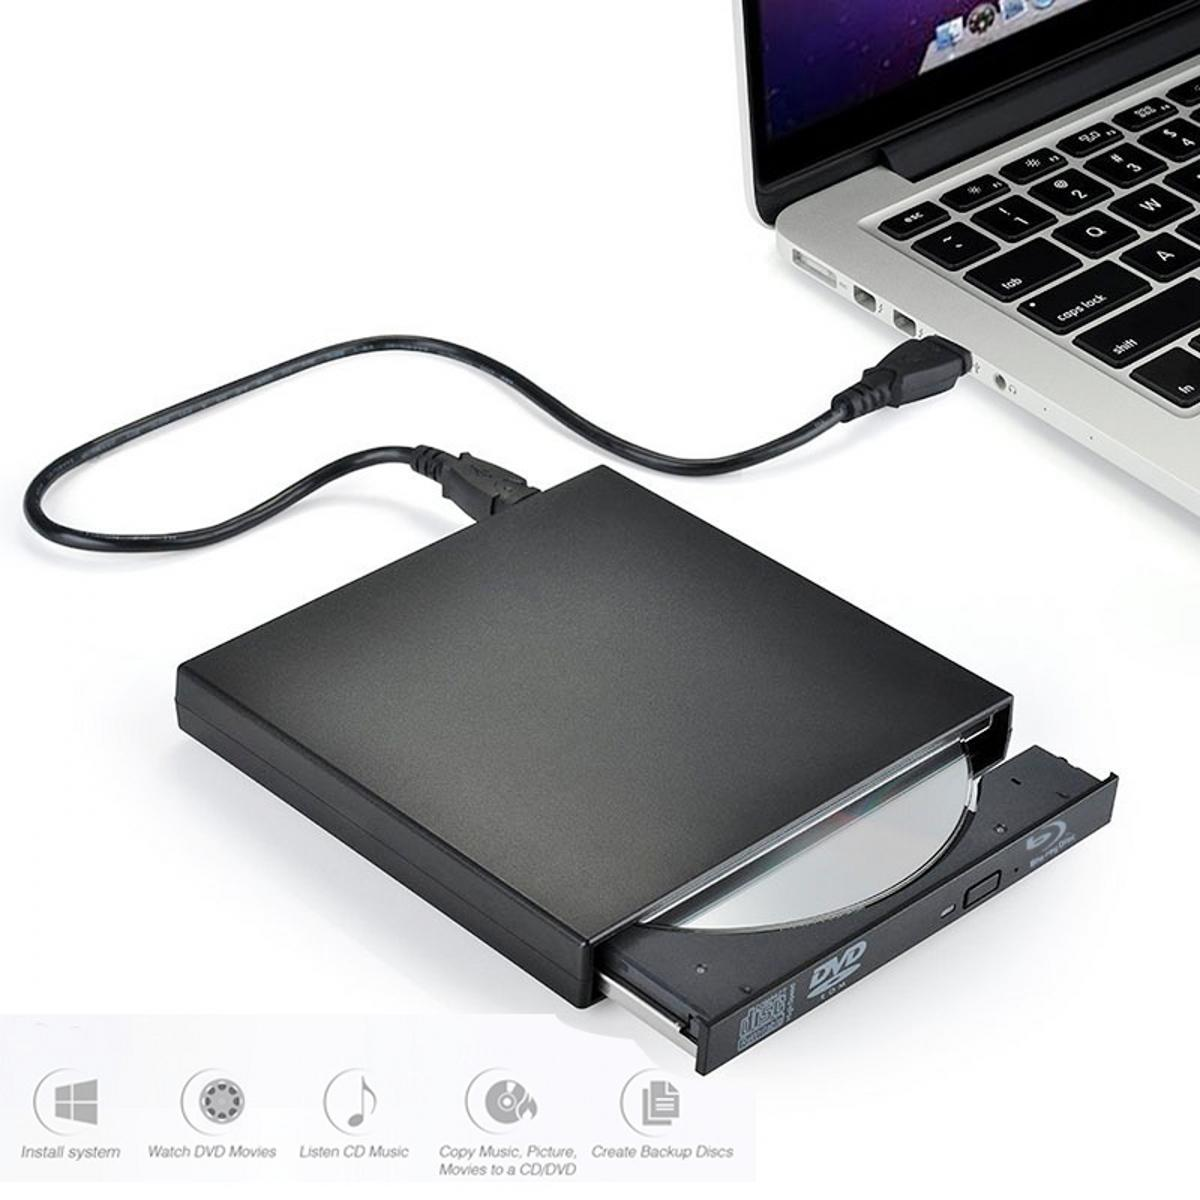 Black USB 2.0 External BD Blu Ray DVD+/RW DVD+/-DL CD+/-RW Drive Writer Burner 3D Play For WINDOWS XP/7/8/10 Mac Desktop Laptop external blu ray drive slim usb 3 0 bluray burner bd re cd dvd rw writer play 3d 4k blu ray disc for laptop notebook netbook